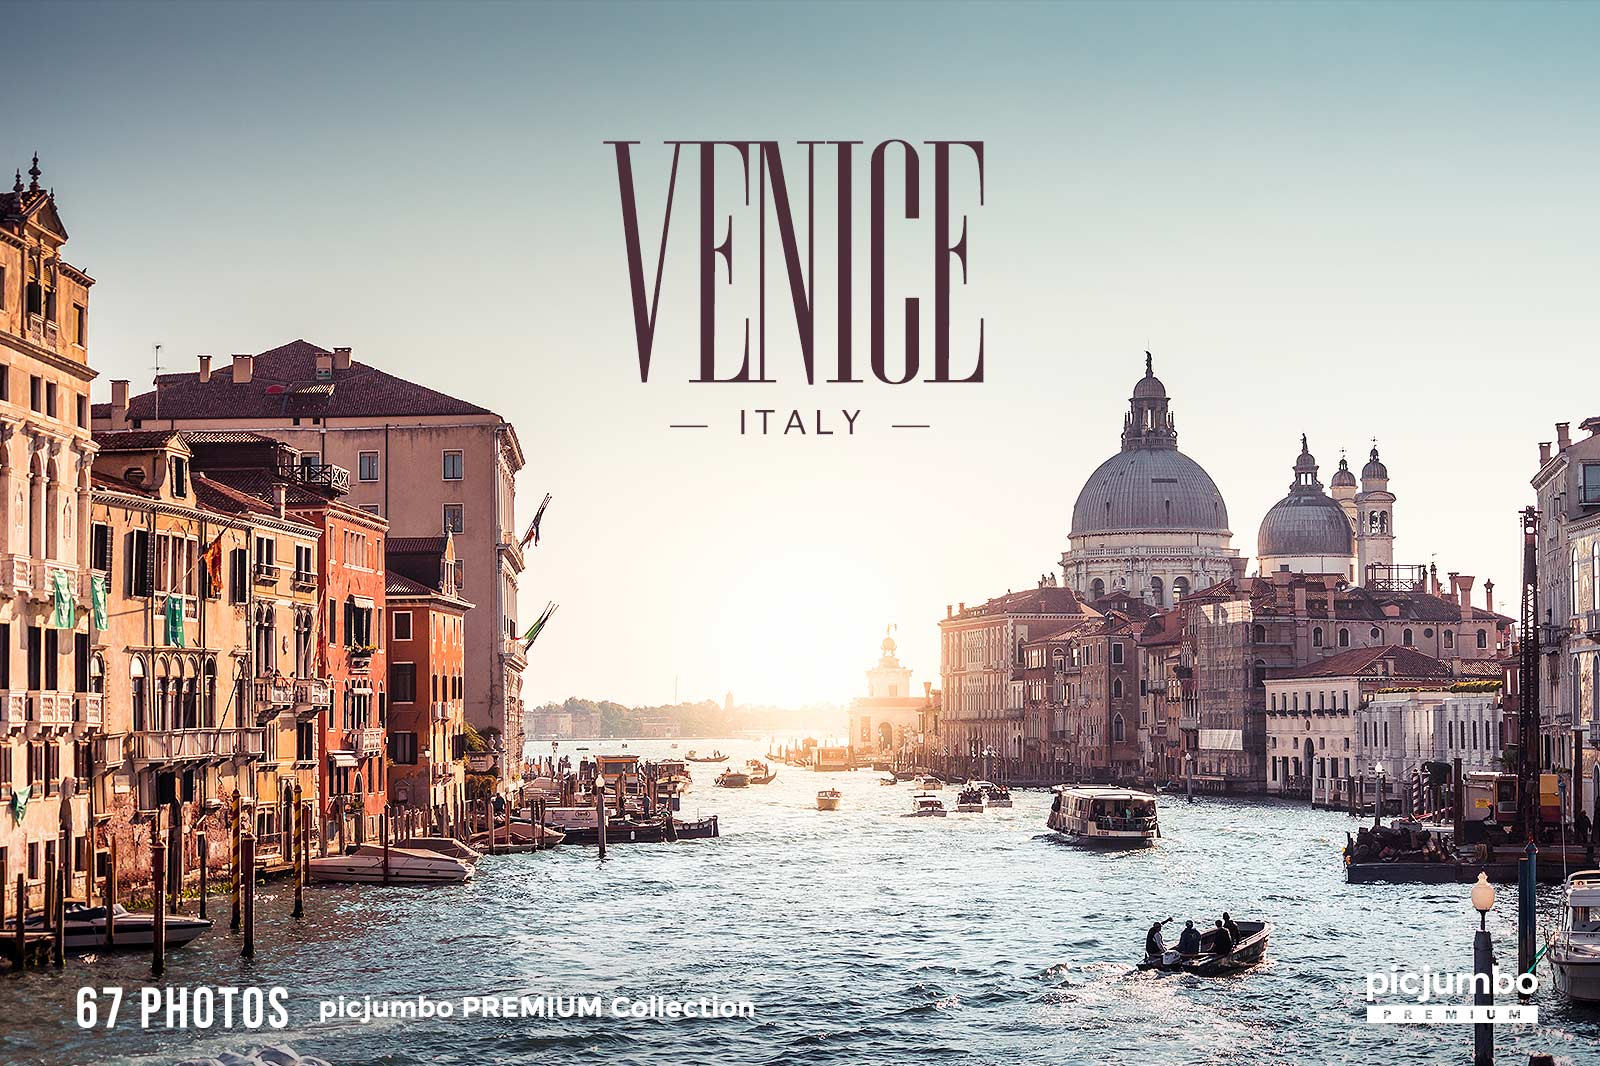 https://i0.wp.com/picjumbo.com/wp-content/uploads/venice-stock-photos-italy.jpg